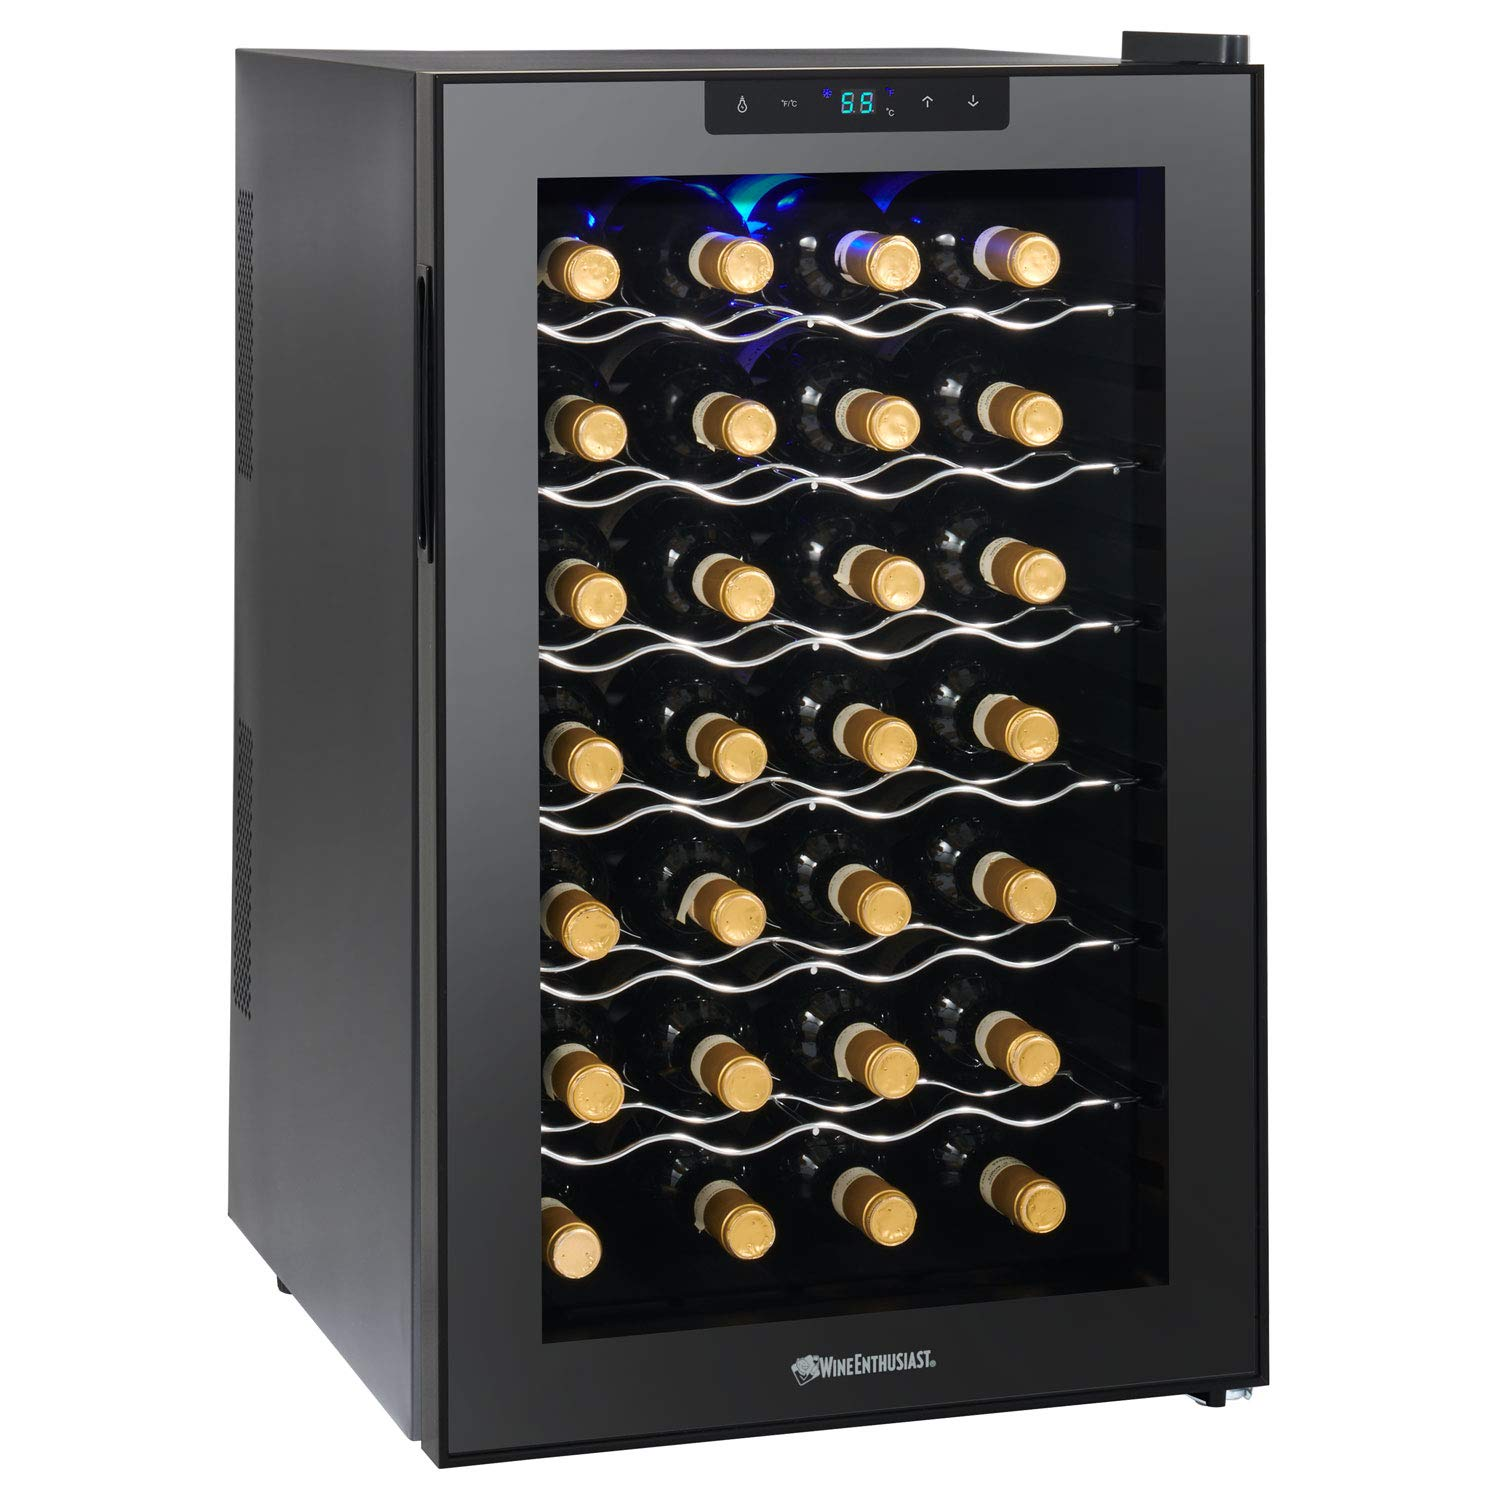 Wine Enthusiast Silent 28 Bottle Wine Refrigerator - Freestanding Touchscreen Wine Cooler, Black by Wine Enthusiast